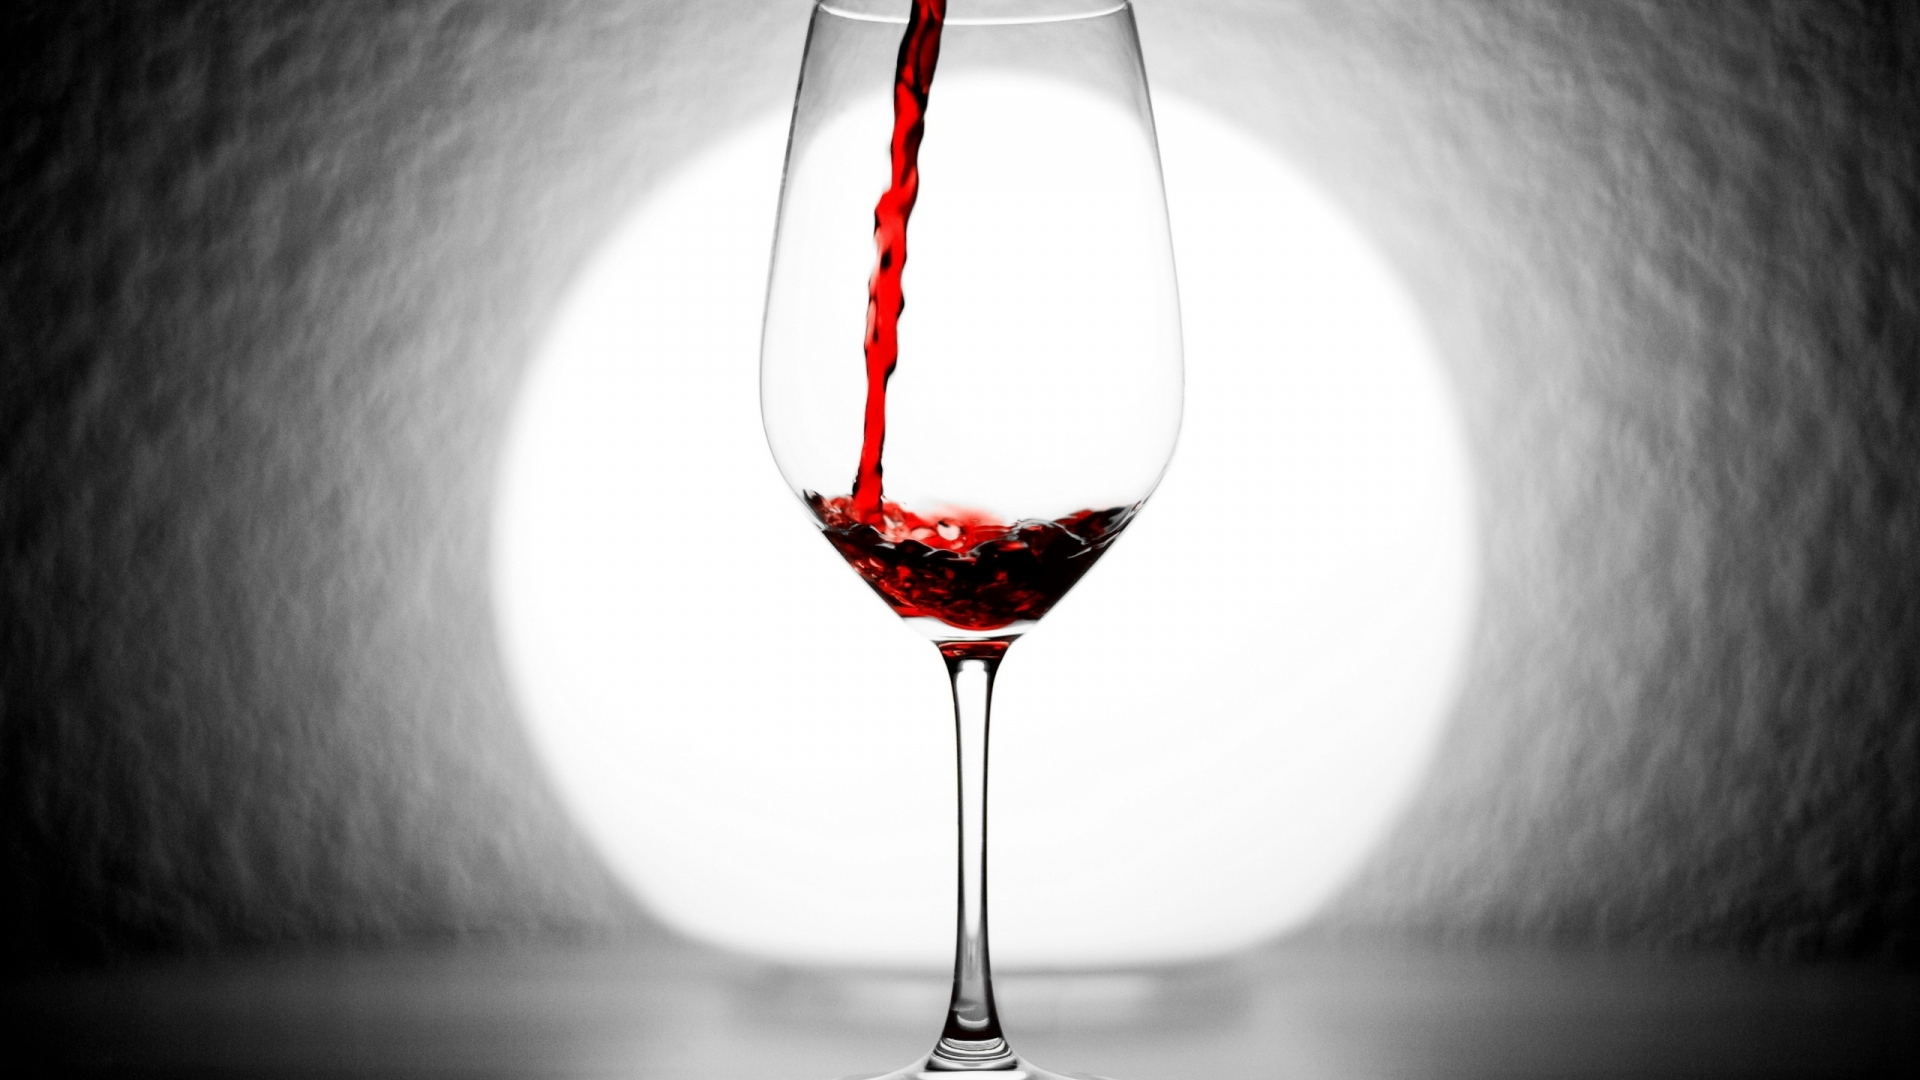 High Quality Wine Glasses 4k Wine Glasses Wallpapers High Quality Download Free